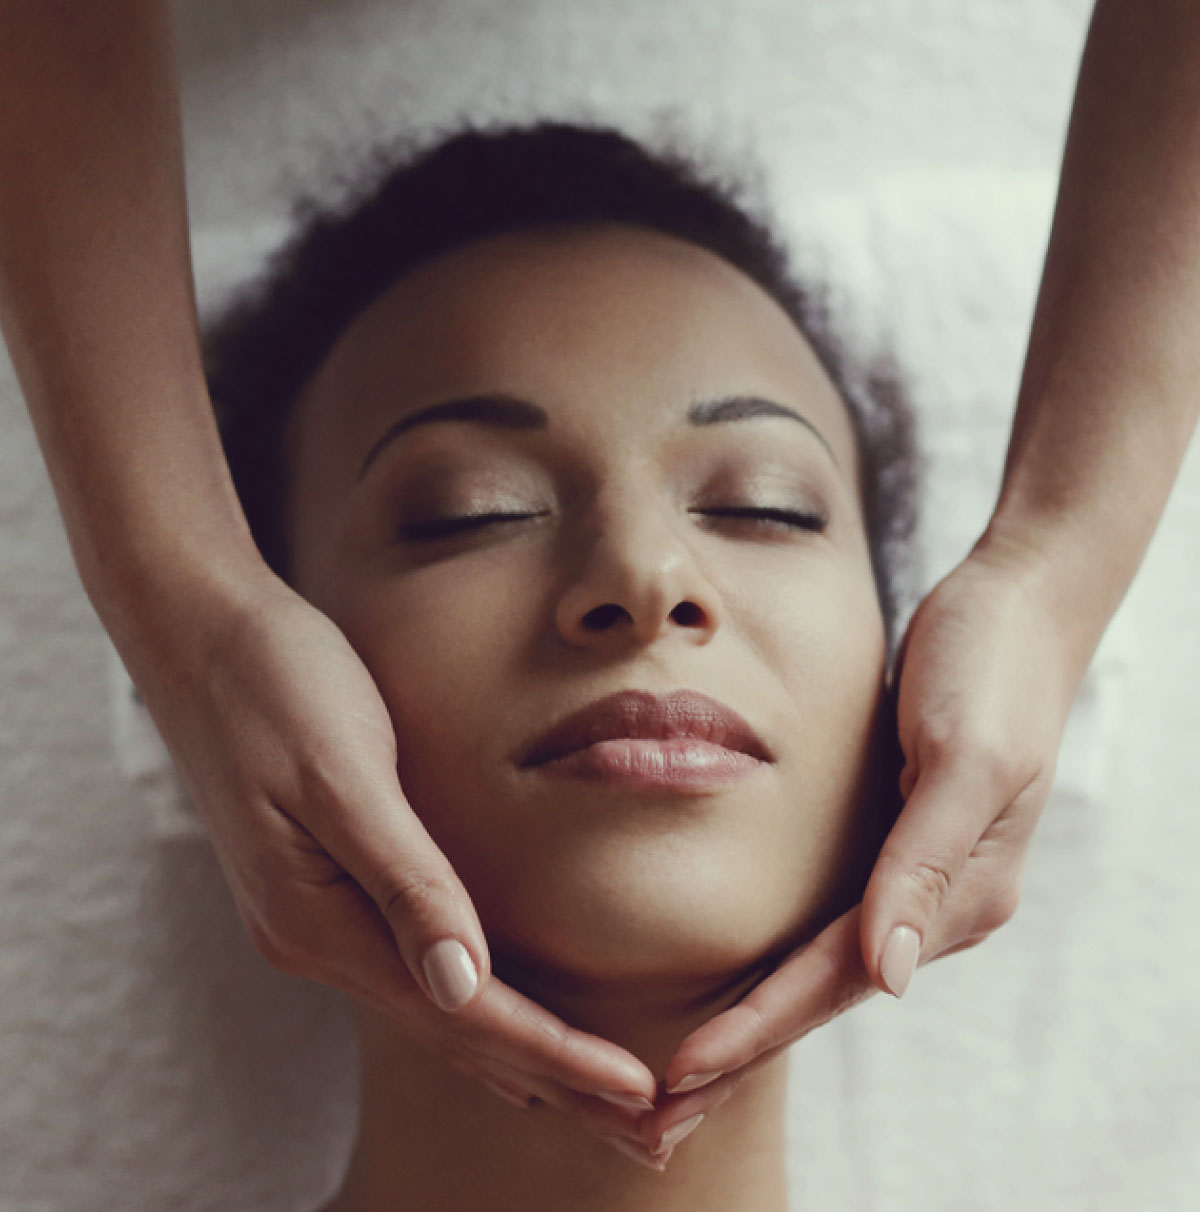 CUSTOMIZED FACIAL - This individually tailored facial caters to all skin types and may include deep cleansing, extractions, exfoliation, personalized specialty products, and hydration, or simply be a skin calming treatment session.30 mins, $45 (Mini)60 mins, $75 (Full)